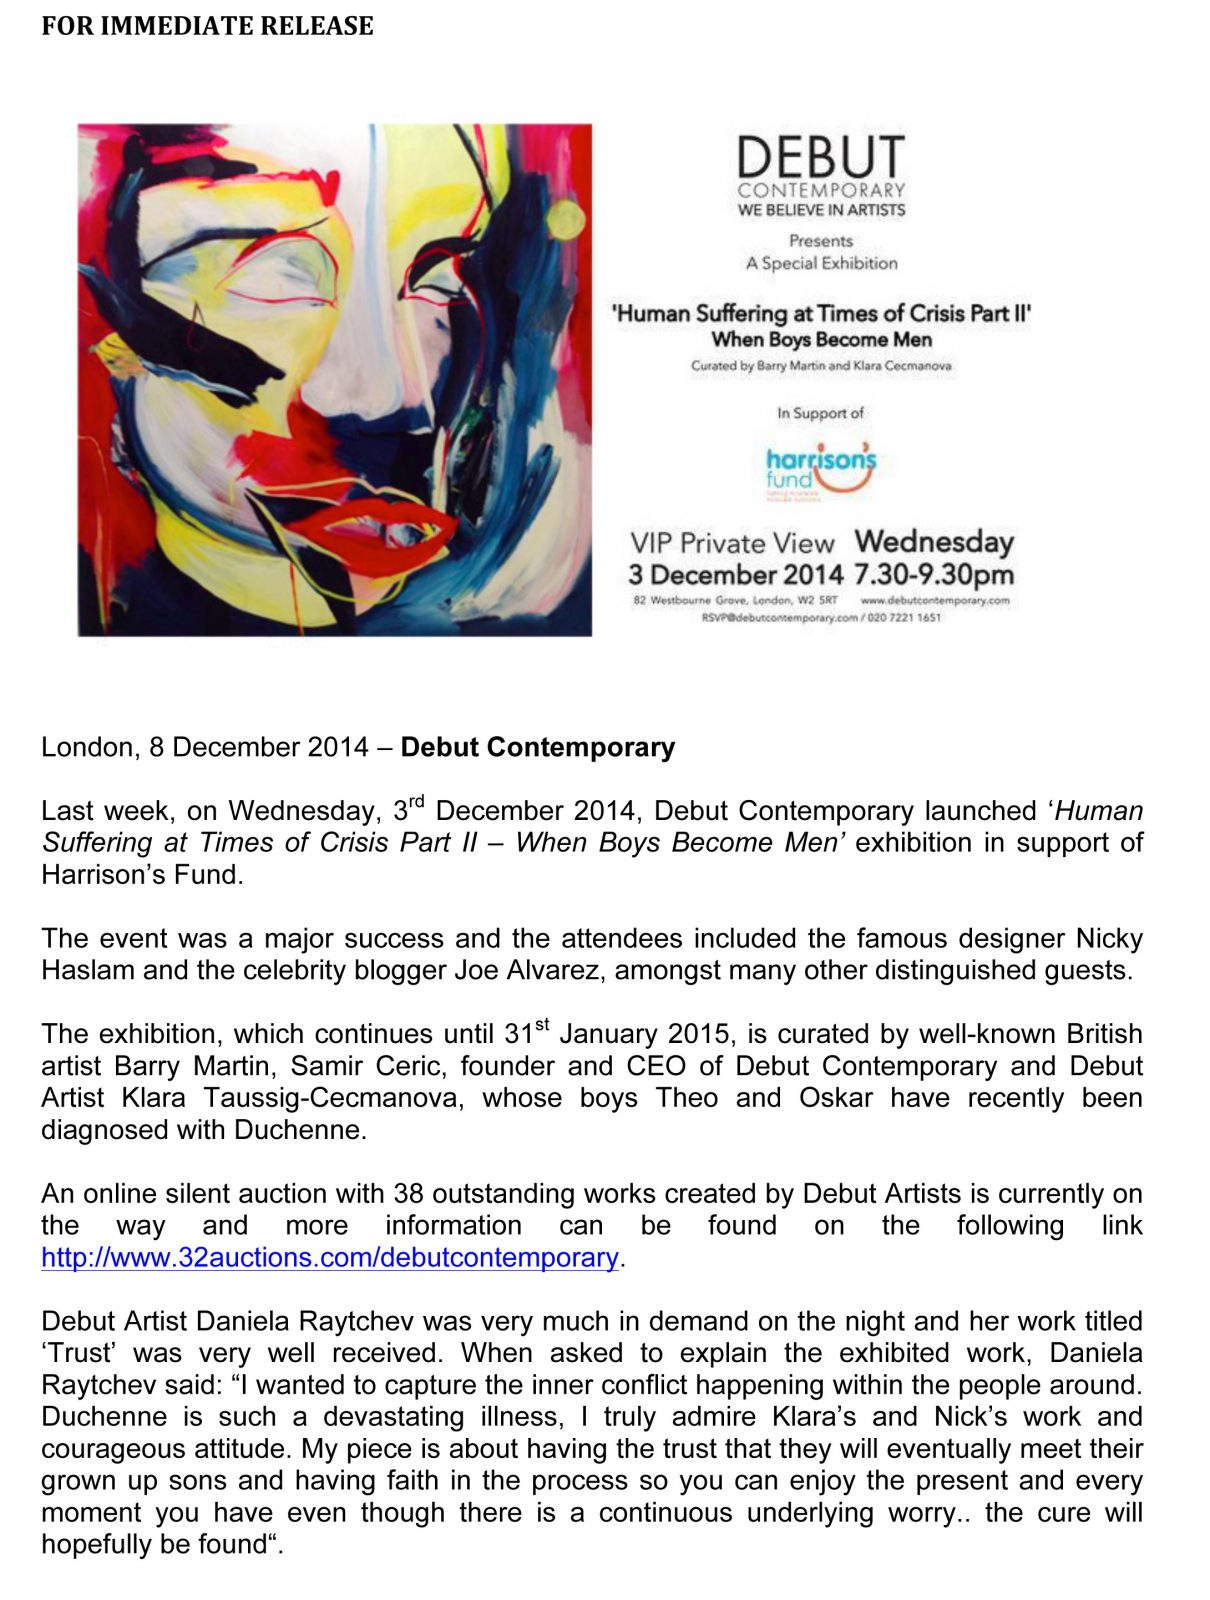 PRESS RELEASE Human Suffering at Times of Crises Exhibition at Debut Contemporary